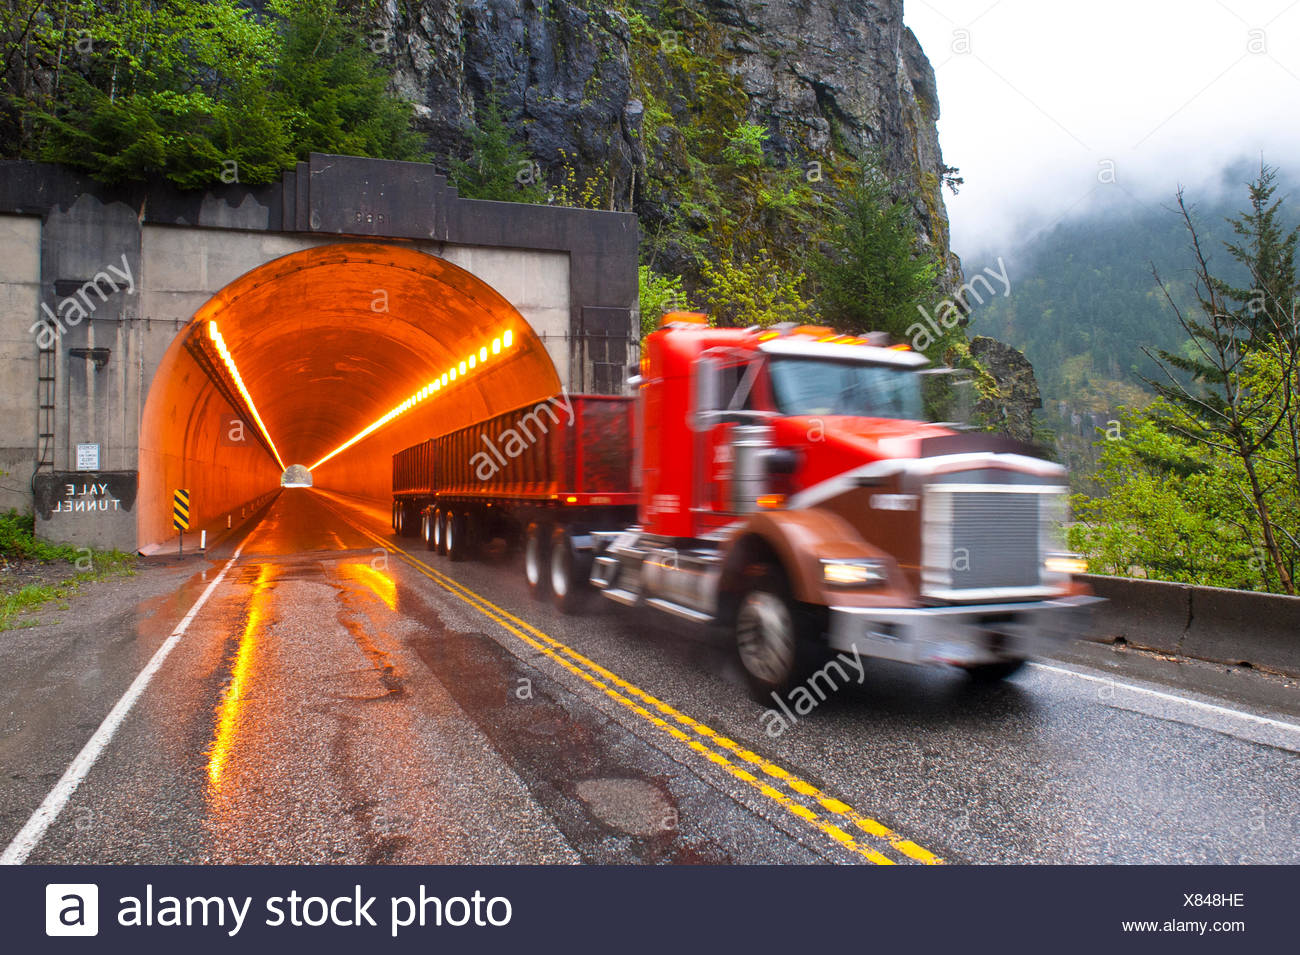 Sodium vapor lights used to illuminate a tunnel. - Stock Image